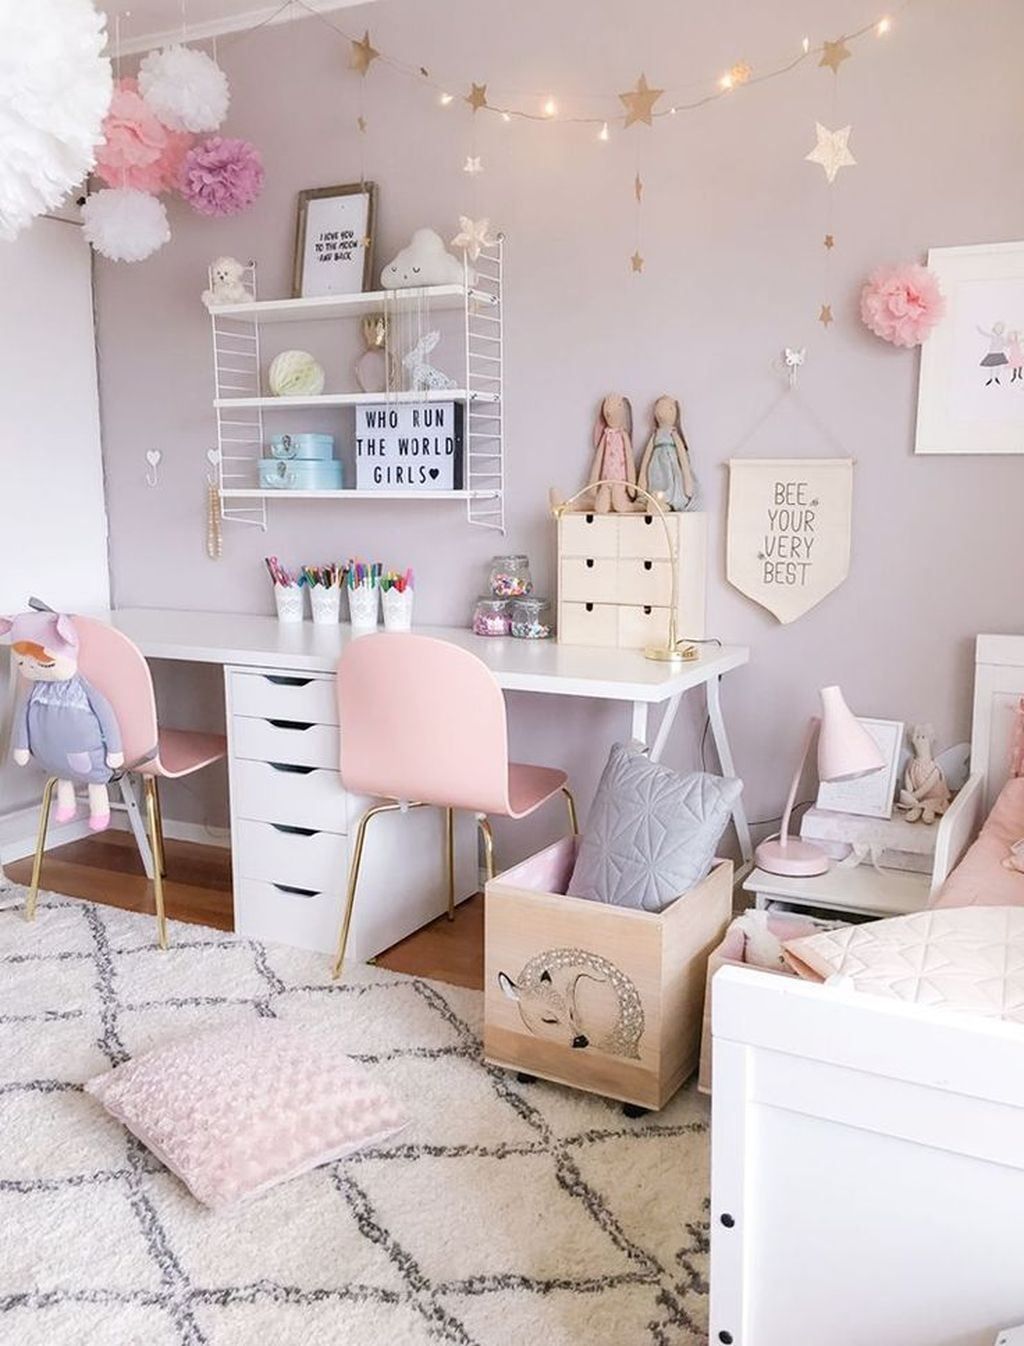 39 Beautiful And Cute Tiny Bedroom Ideas For Girls Cute Bedroom